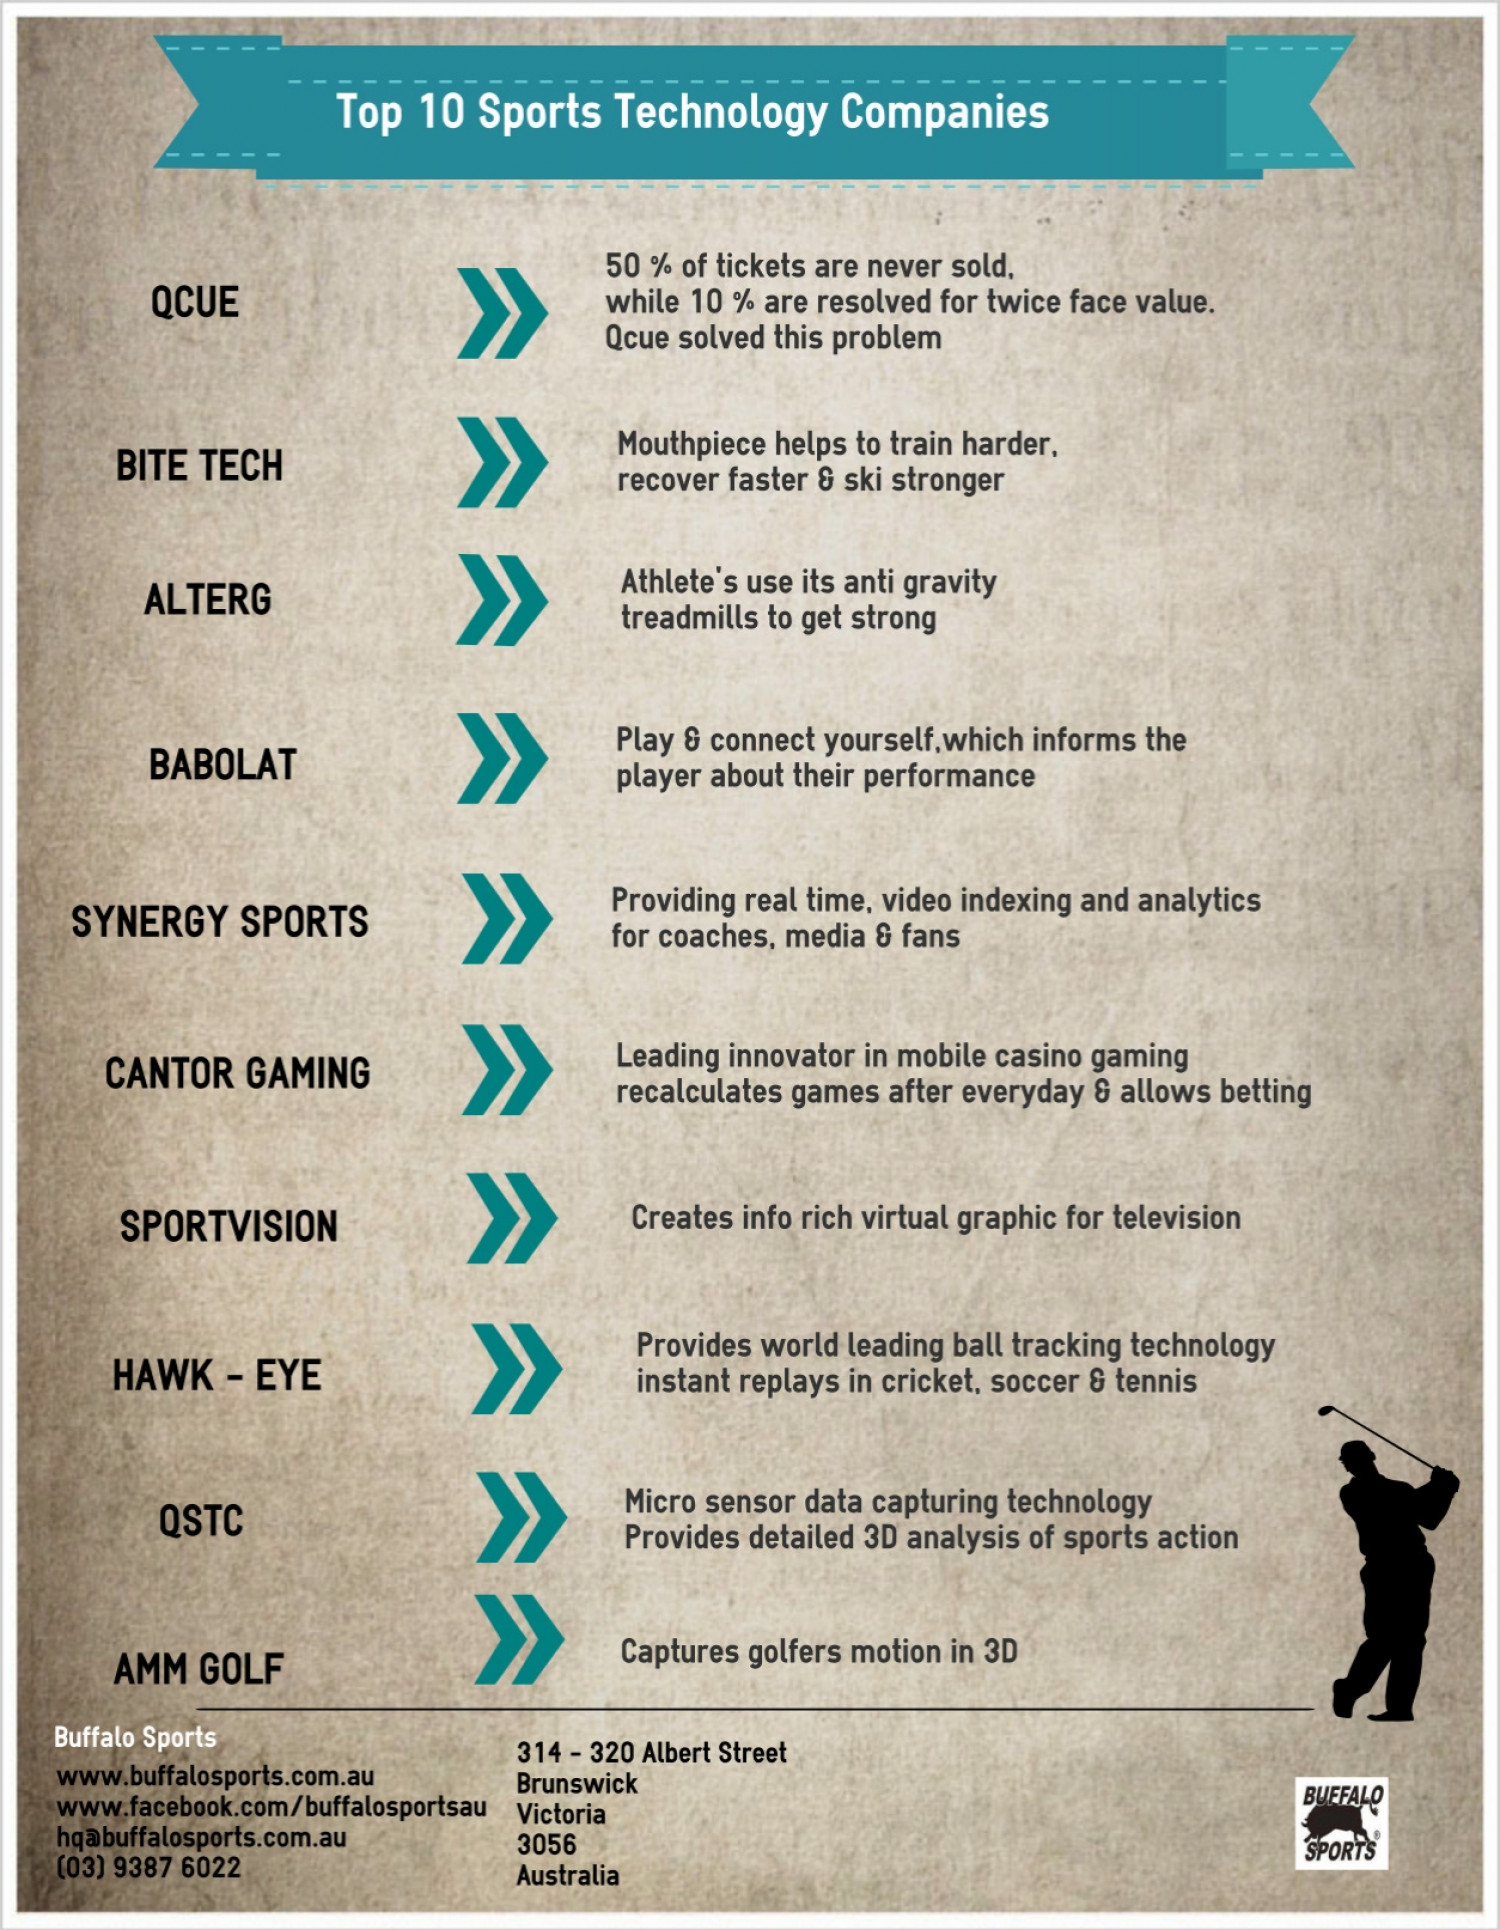 Top 10 Sports Technology Companies Infographic